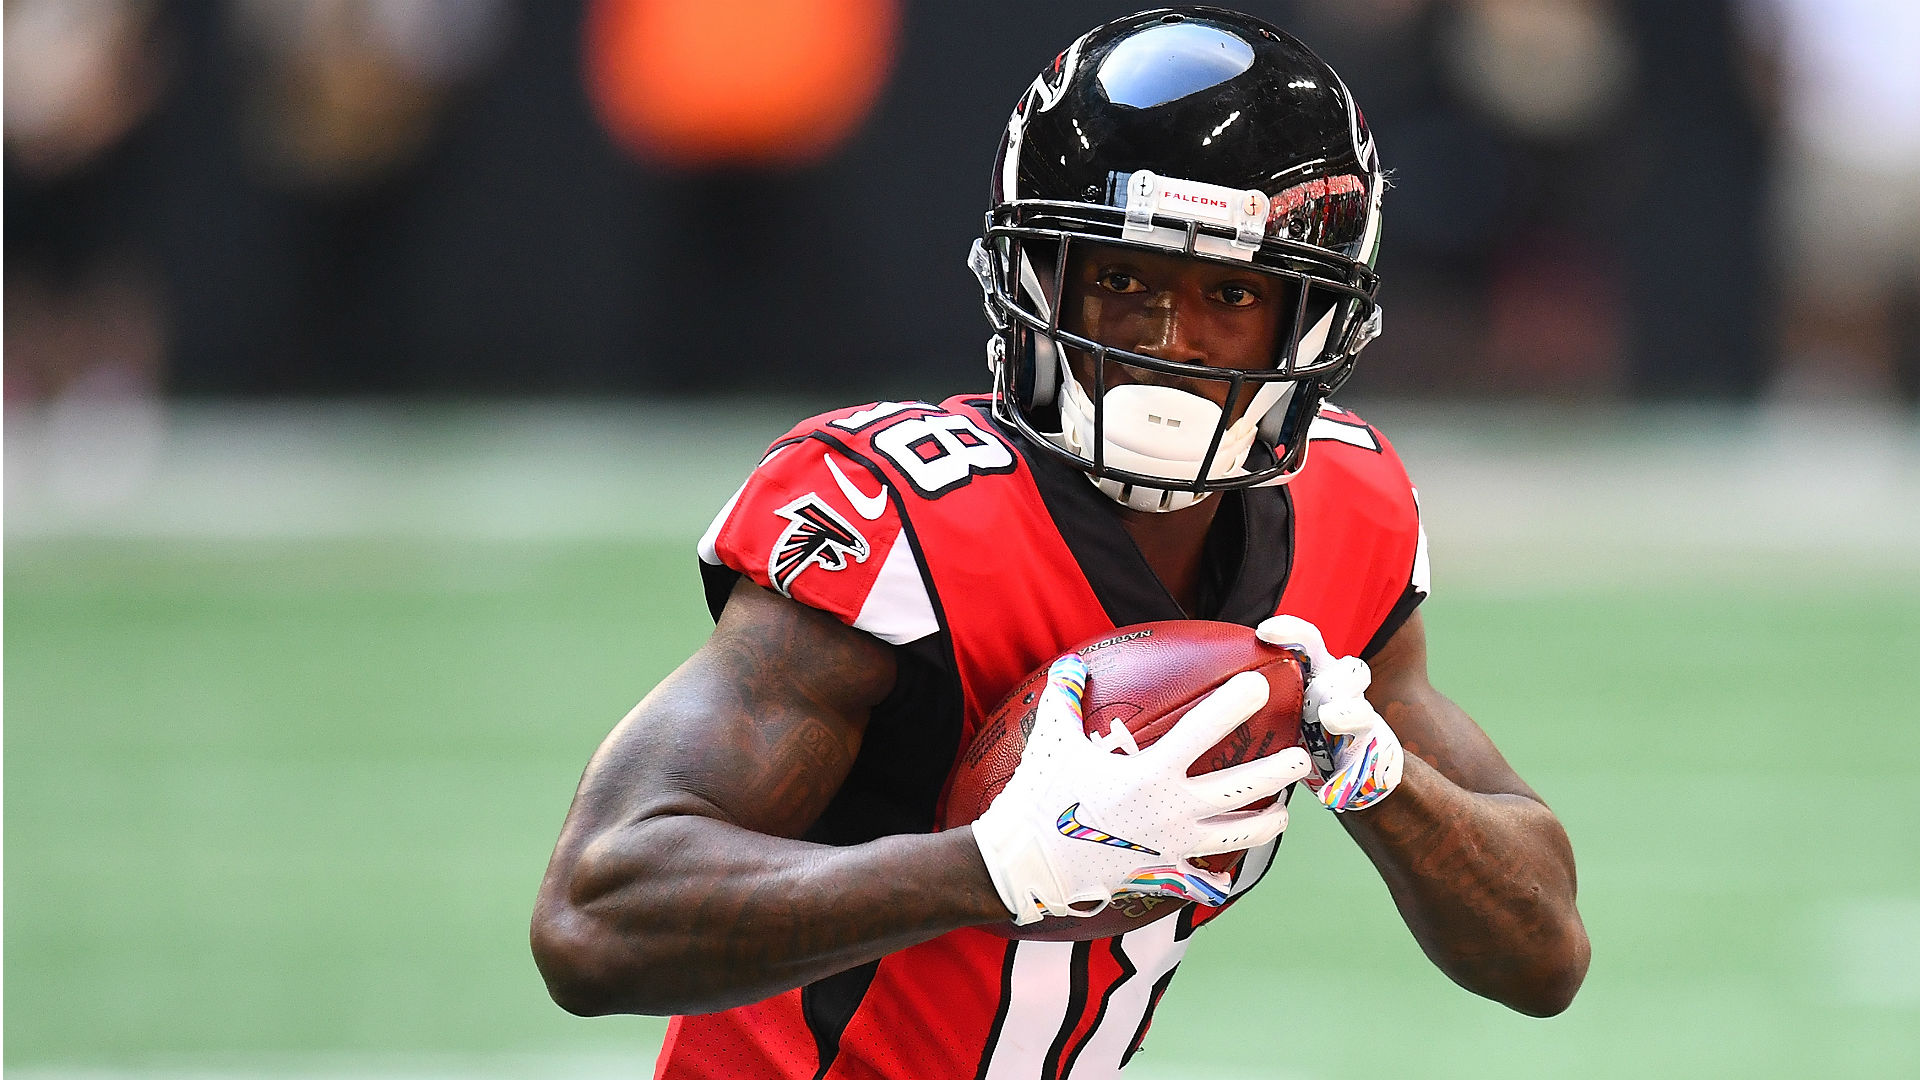 Falcons Wr Ridley Expected To Play Against Giants Sporting News